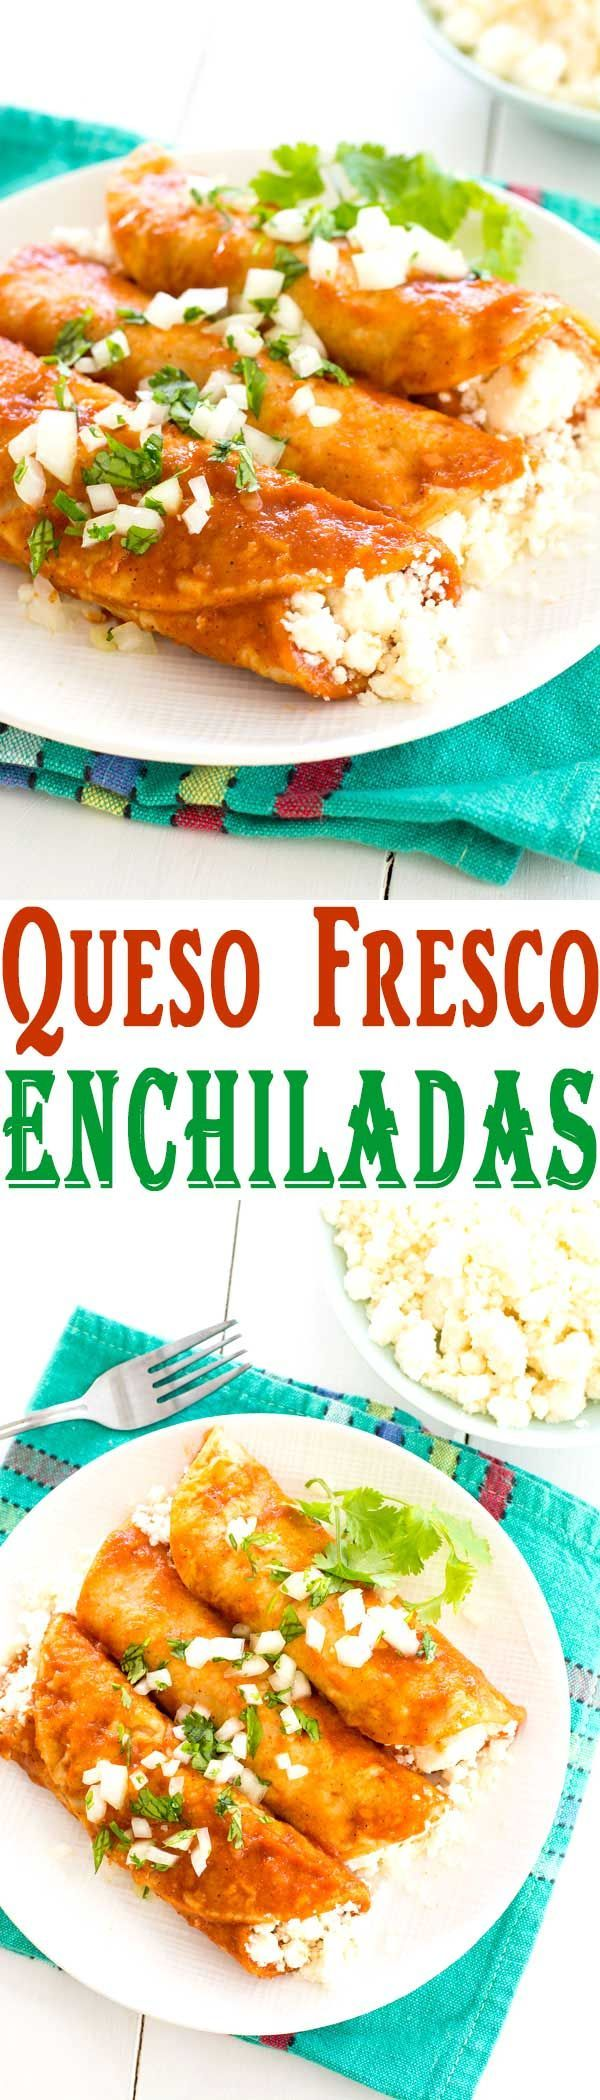 Queso Fresco Enchiladas - the best cheese enchiladas with red sauce are so easy! #dinnerrecipes #mexicanfood #vegetarian #recipeoftheday